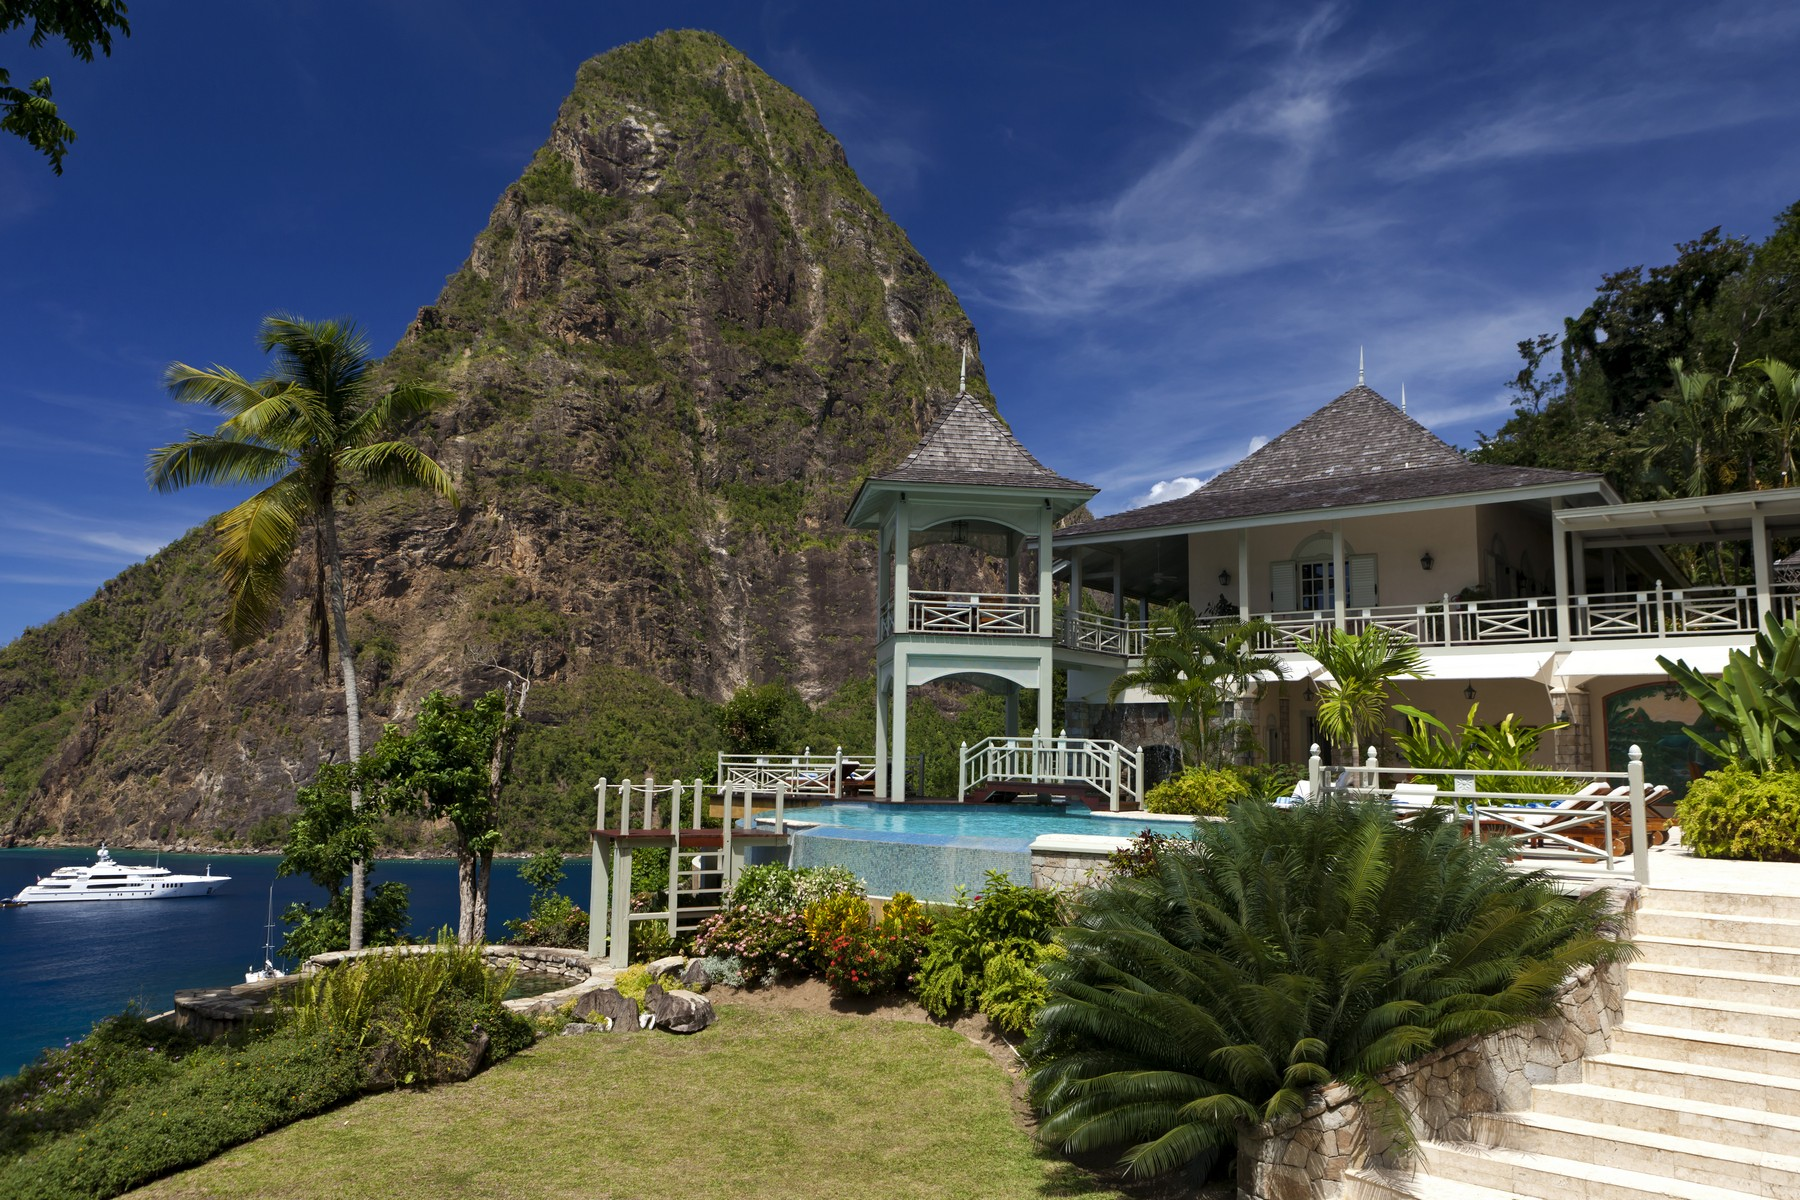 Single Family Home for Sale at Arc en Ciel Other St. Lucia, Other Areas In St. Lucia, St. Lucia